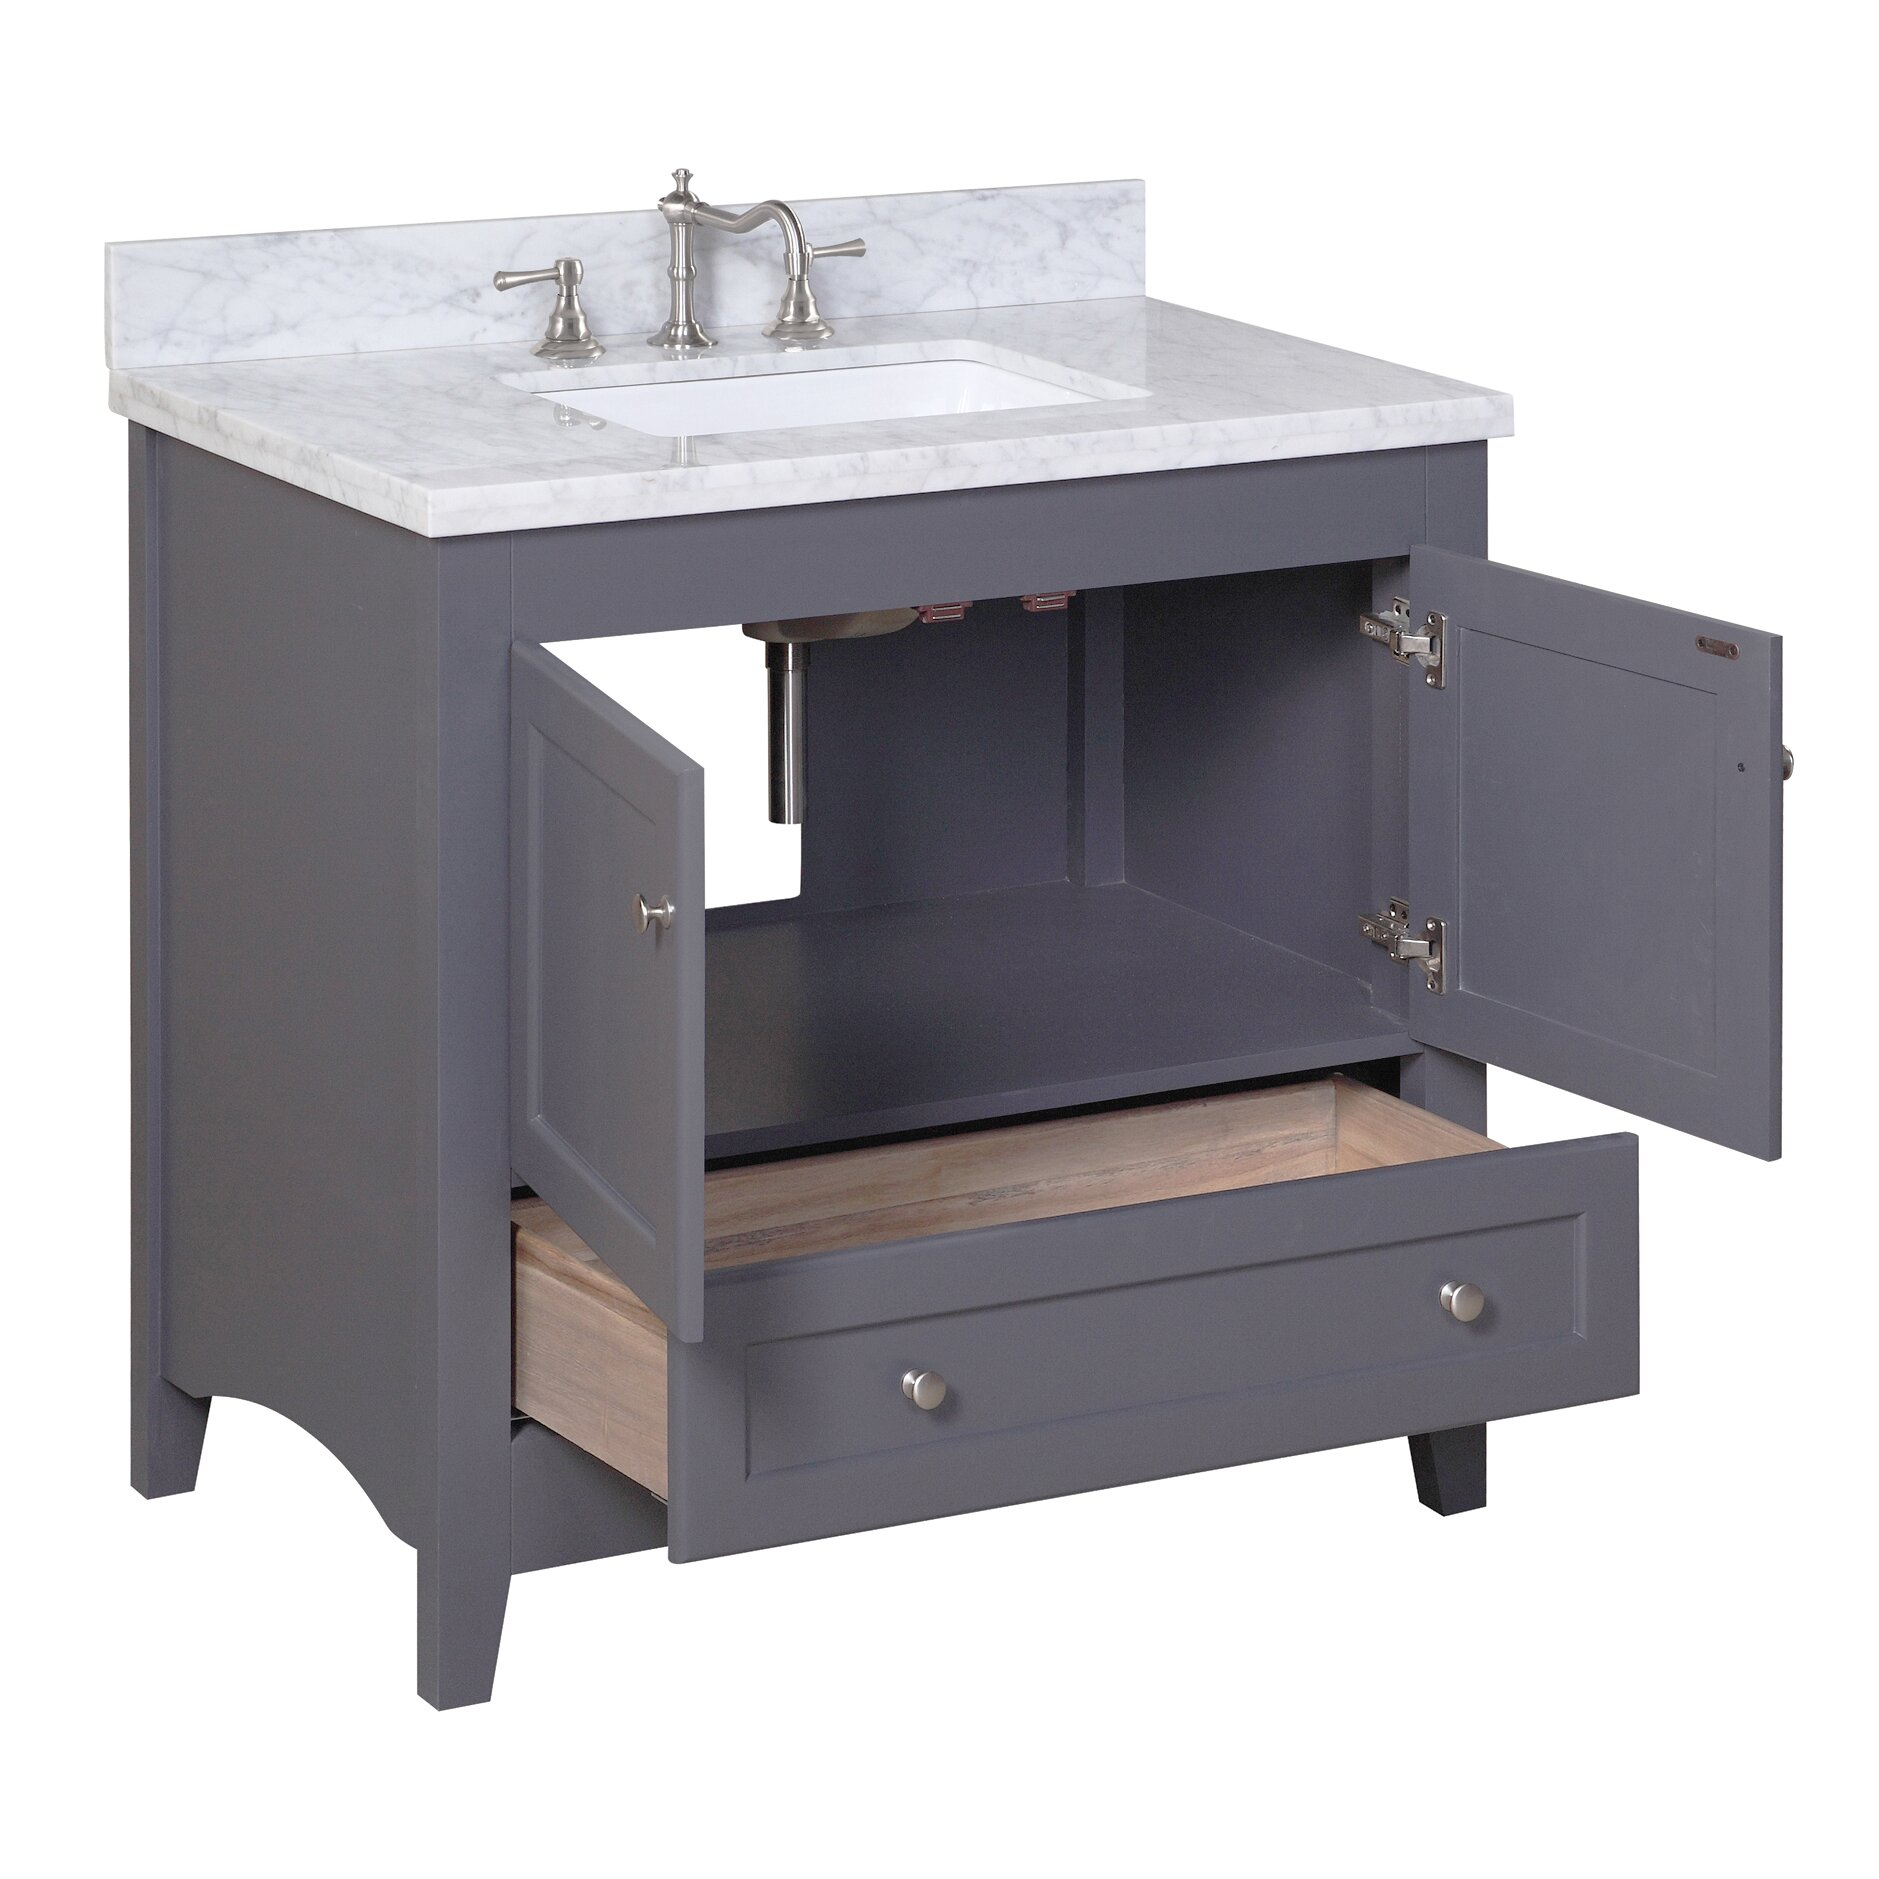 Kitchen Bathroom Kbc Abbey 36 Single Bathroom Vanity Set Reviews Wayfair